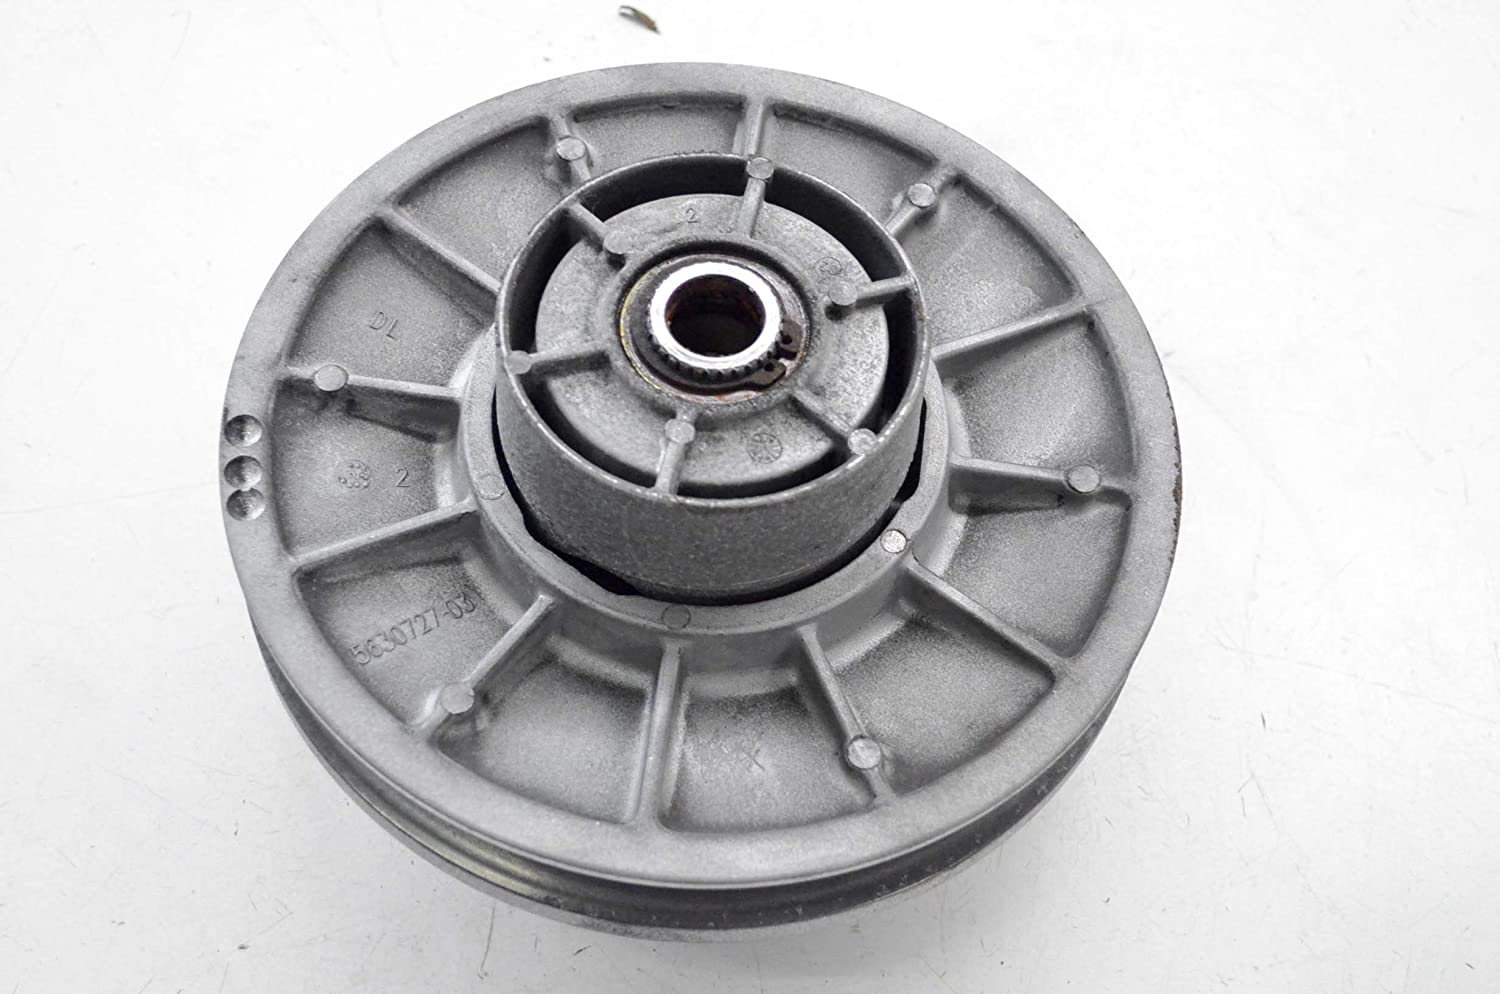 Amazon.com: New OEM Polaris Secondary Driven Clutch Magnum 325 500 Sportsman 600 700 1321973: Automotive